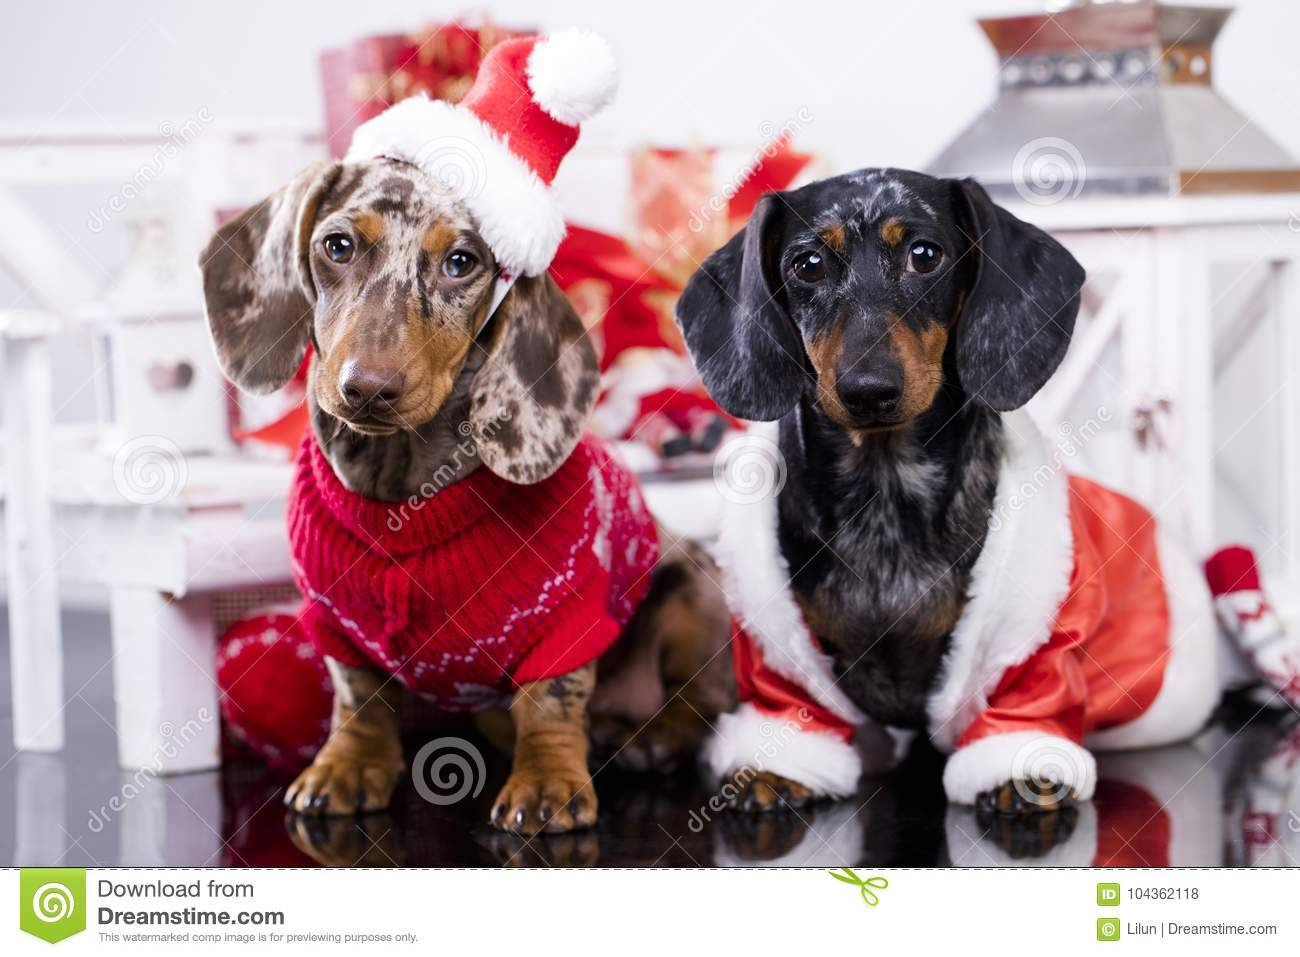 download christmas dachshund puppies stock photo image of doggy animal 104362118 - Christmas Dachshund